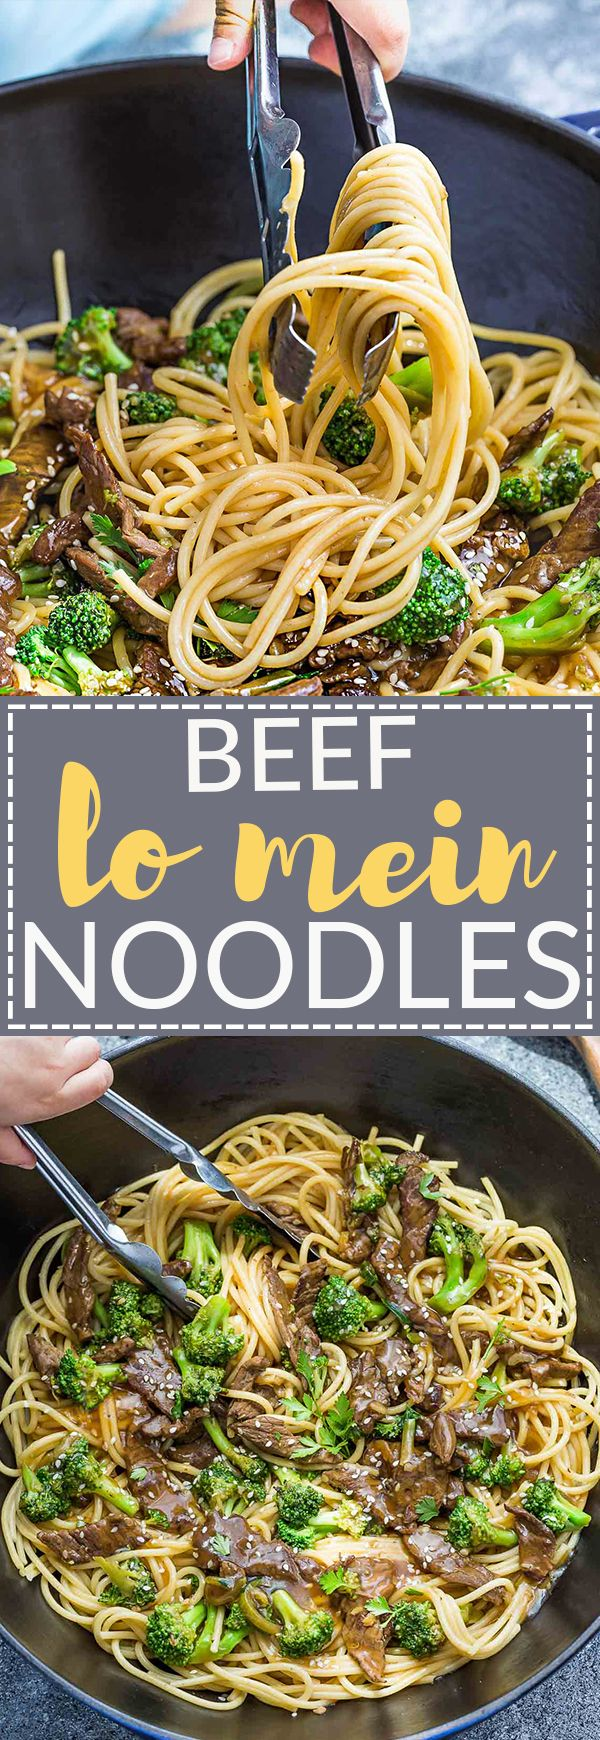 This recipe for Beef Lo Mein Noodles with Broccoli makes the perfect easy weeknight meal. Best of all, this one pot recipe comes together in under 30 minutes and is much healthier and tastier than your local Chinese restaurant takeout! Great for Sunday weekly meal prep for work or school lunchboxes and lunch bowls and super easy to customize with your favorite vegetables and protein!